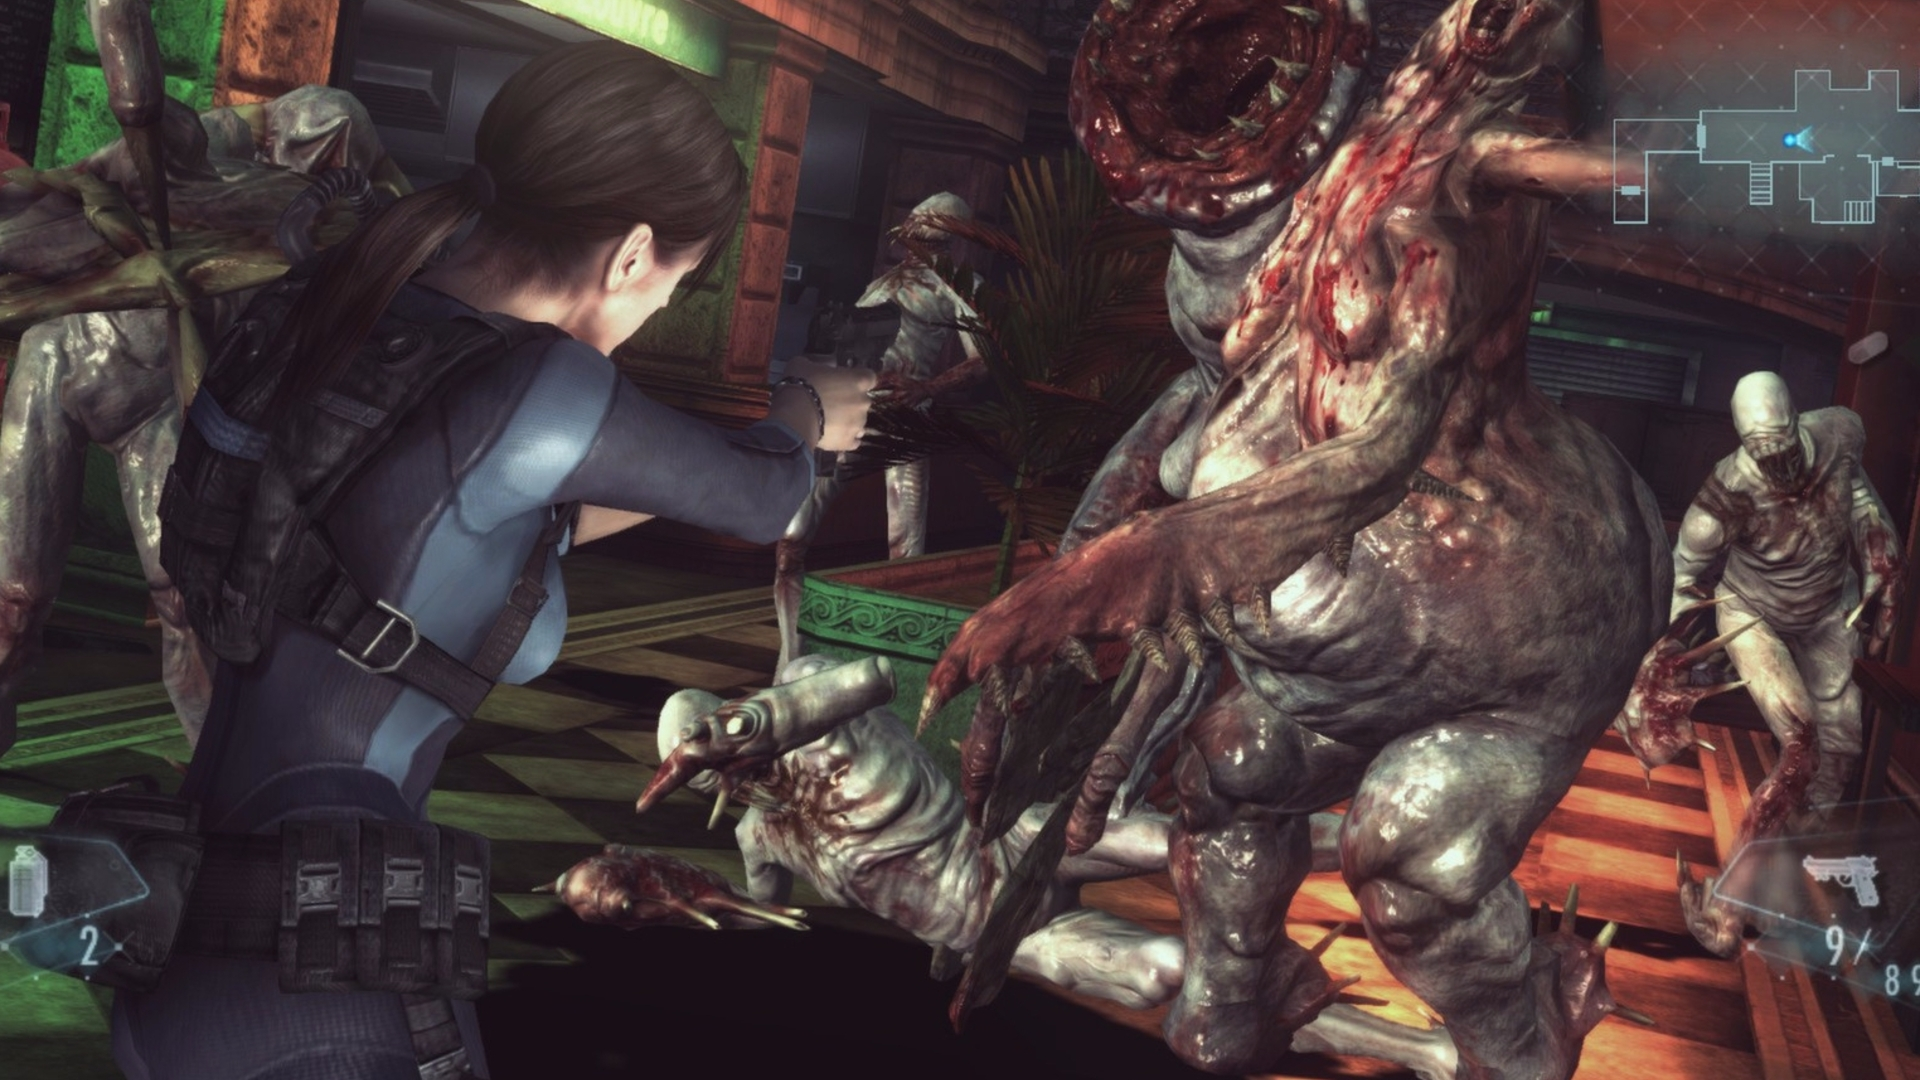 Resident Evil Revelations Raid Mode Characters Weapons